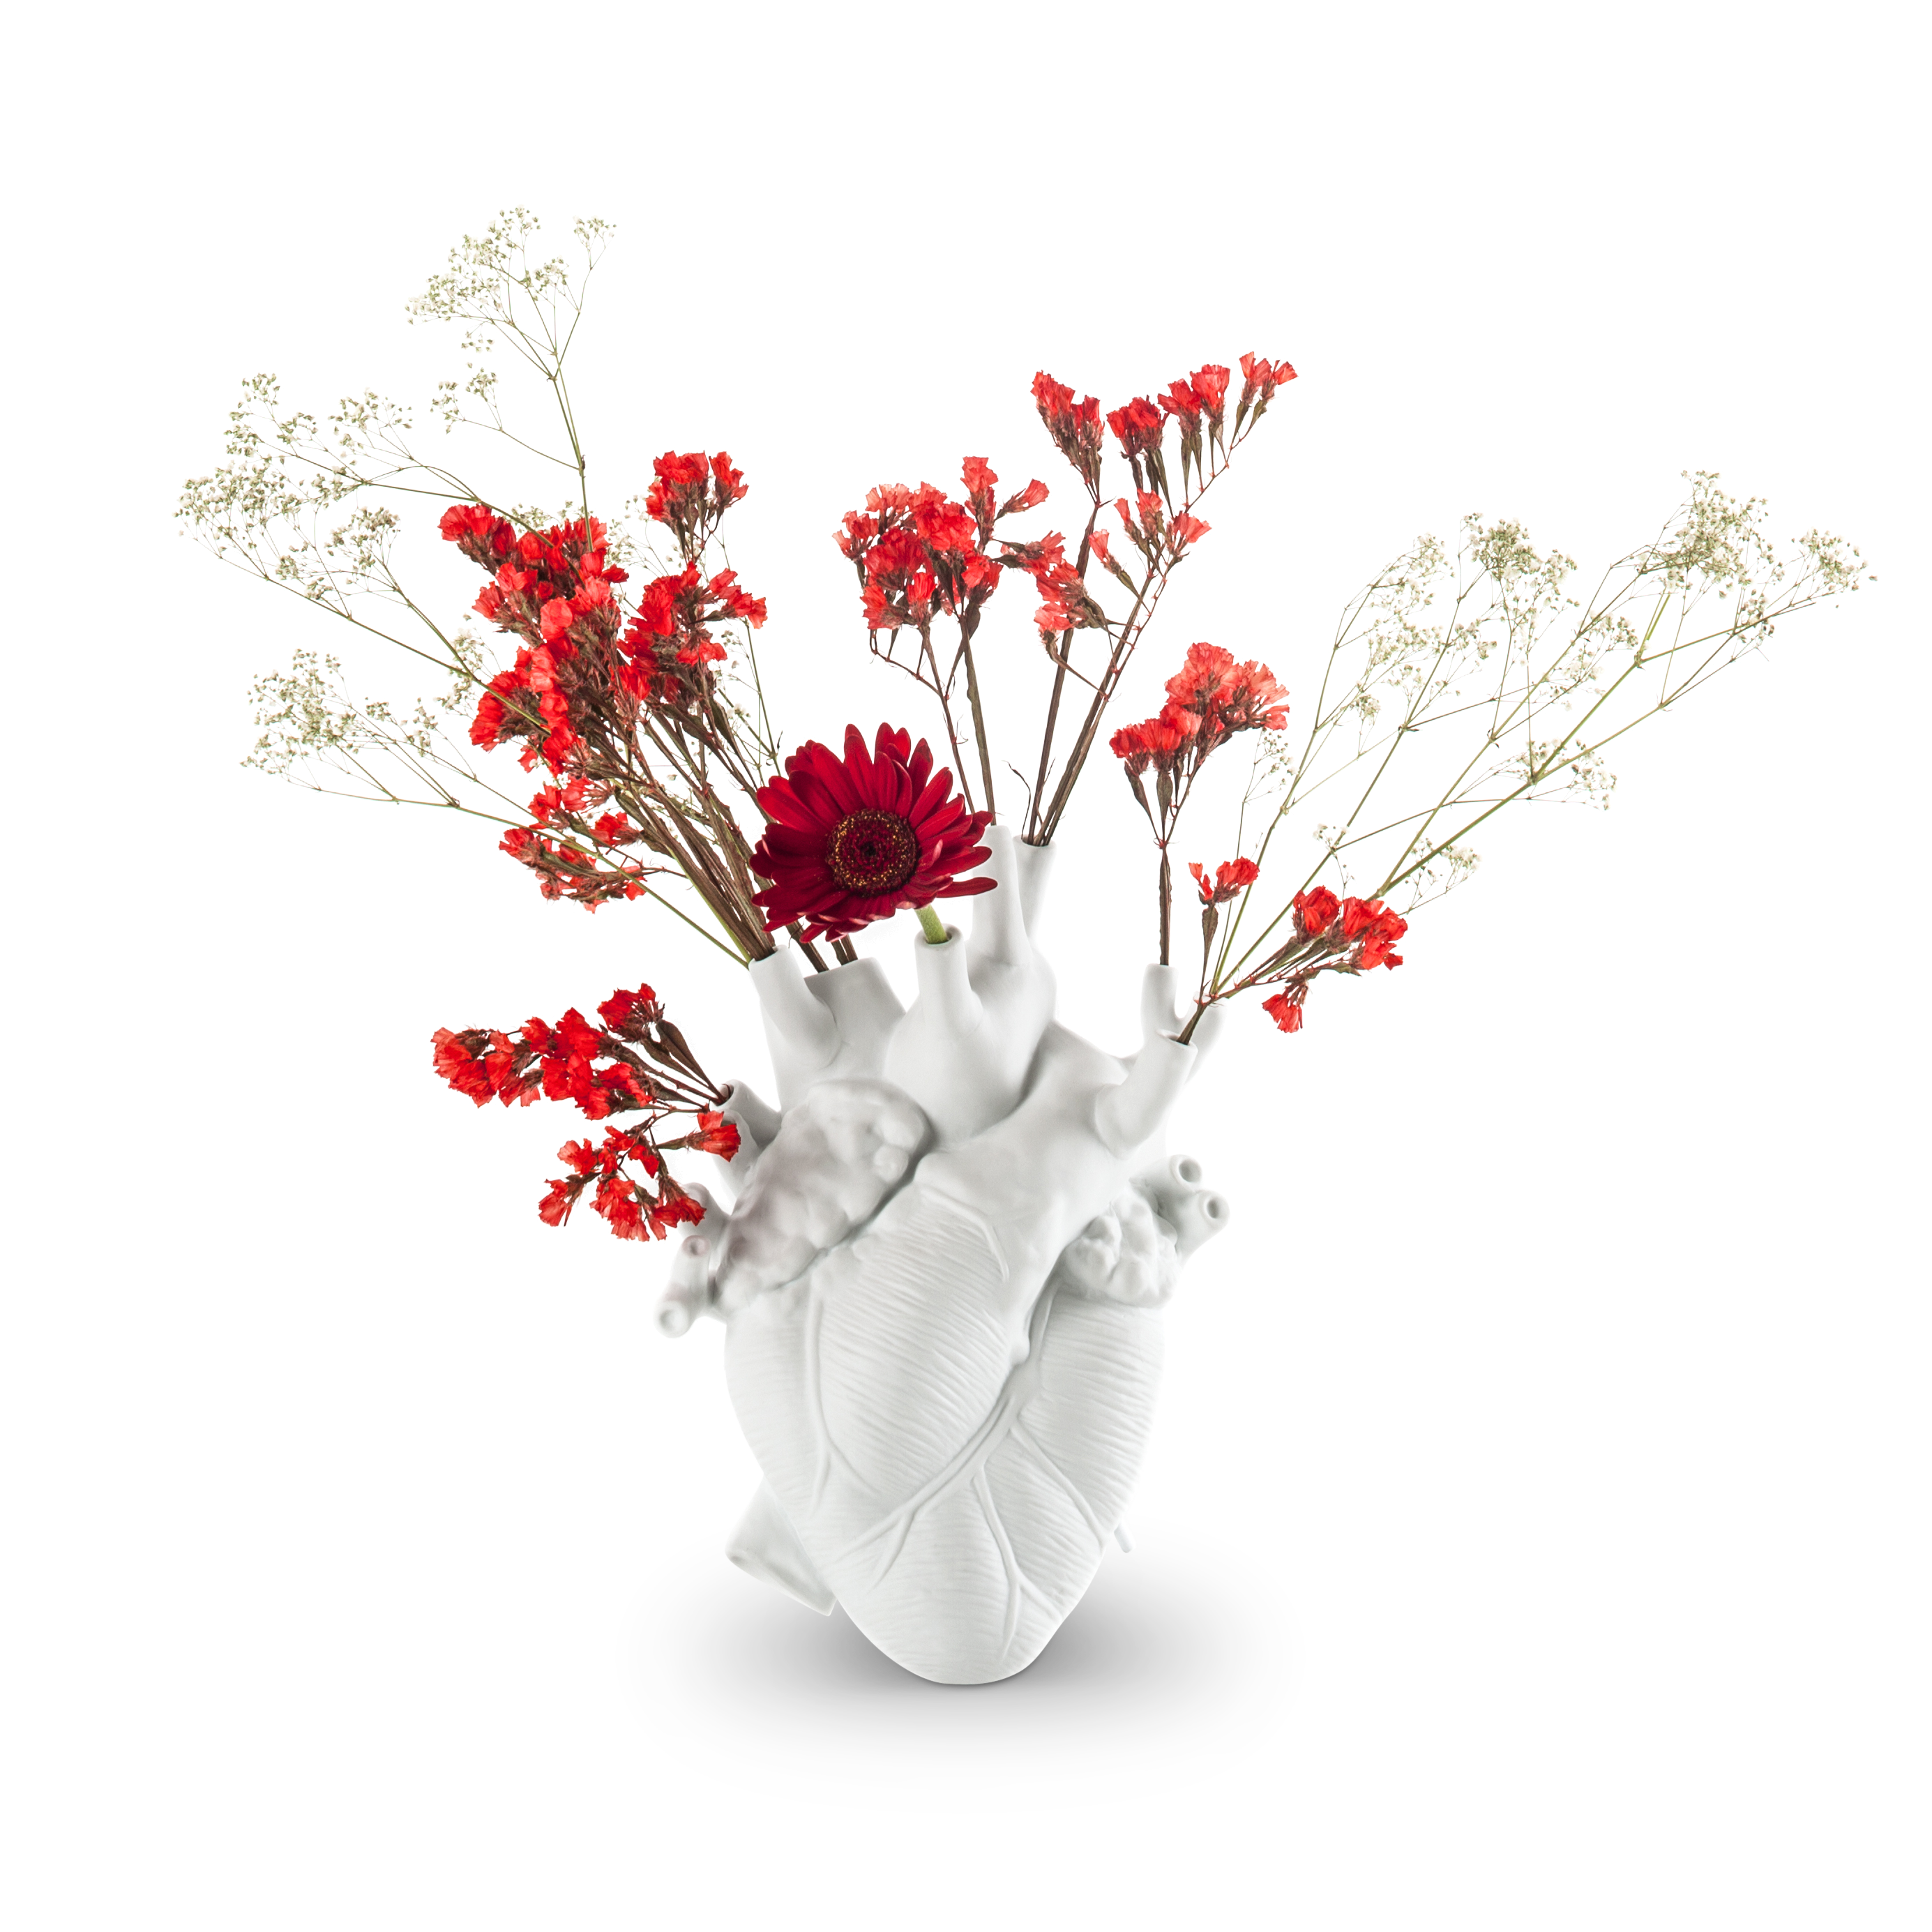 love-bloom-heart-shaped-vase-seletti-1